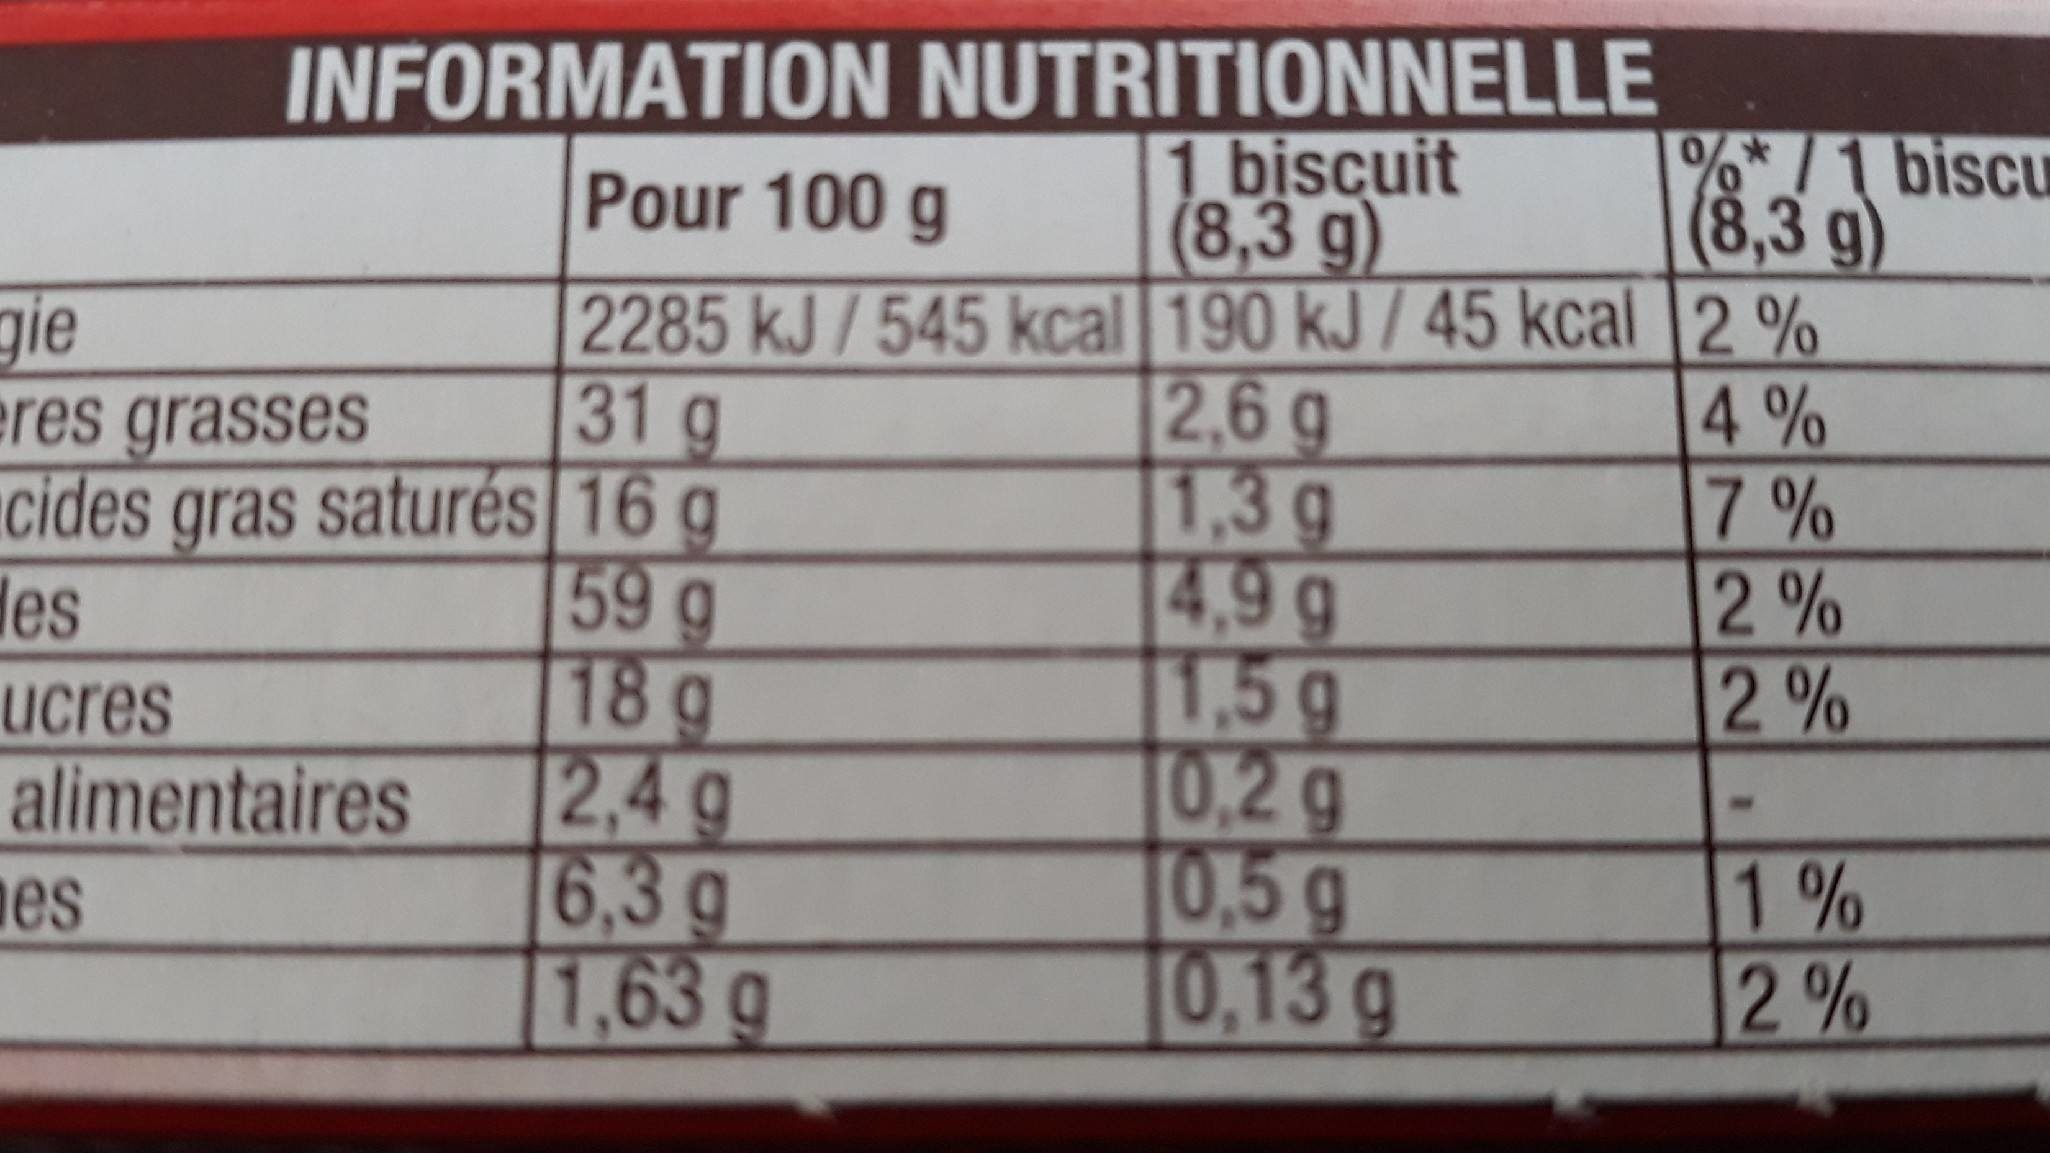 Palmito L'original - Nutrition facts